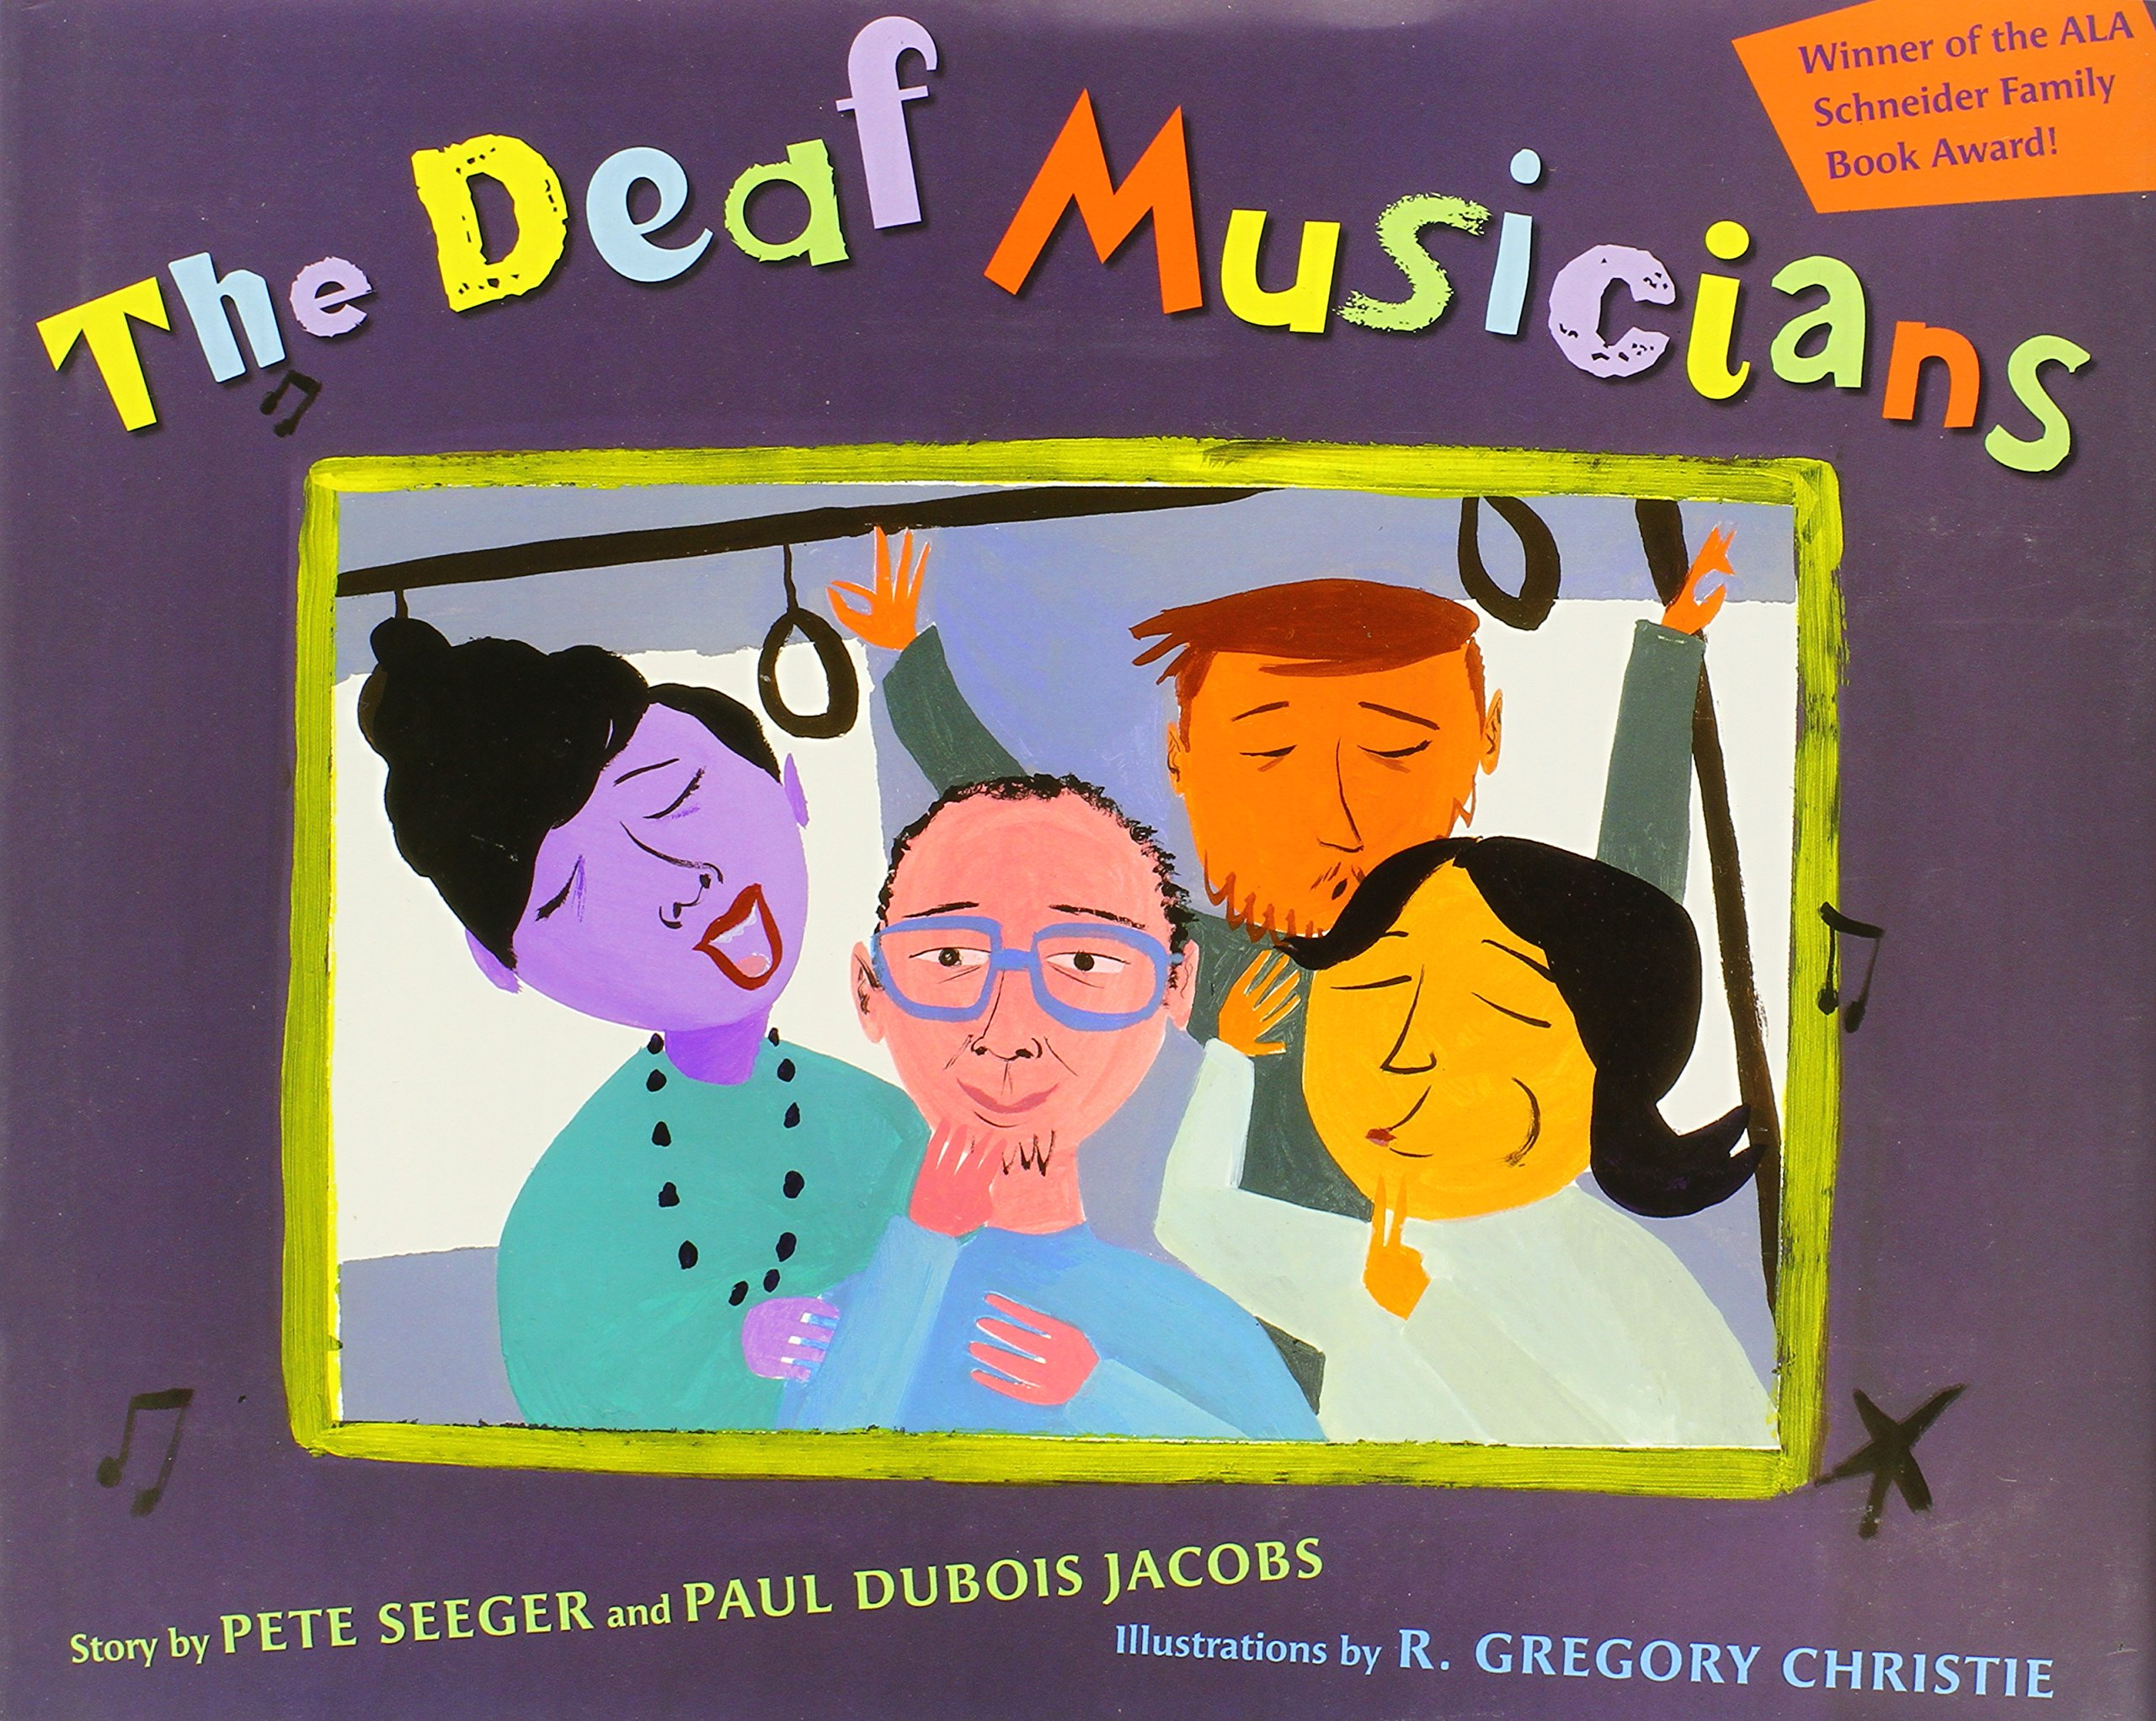 Disability in Children's Literature: The Deaf Musicians by Pete Seger and Paul Dubois Jacobs